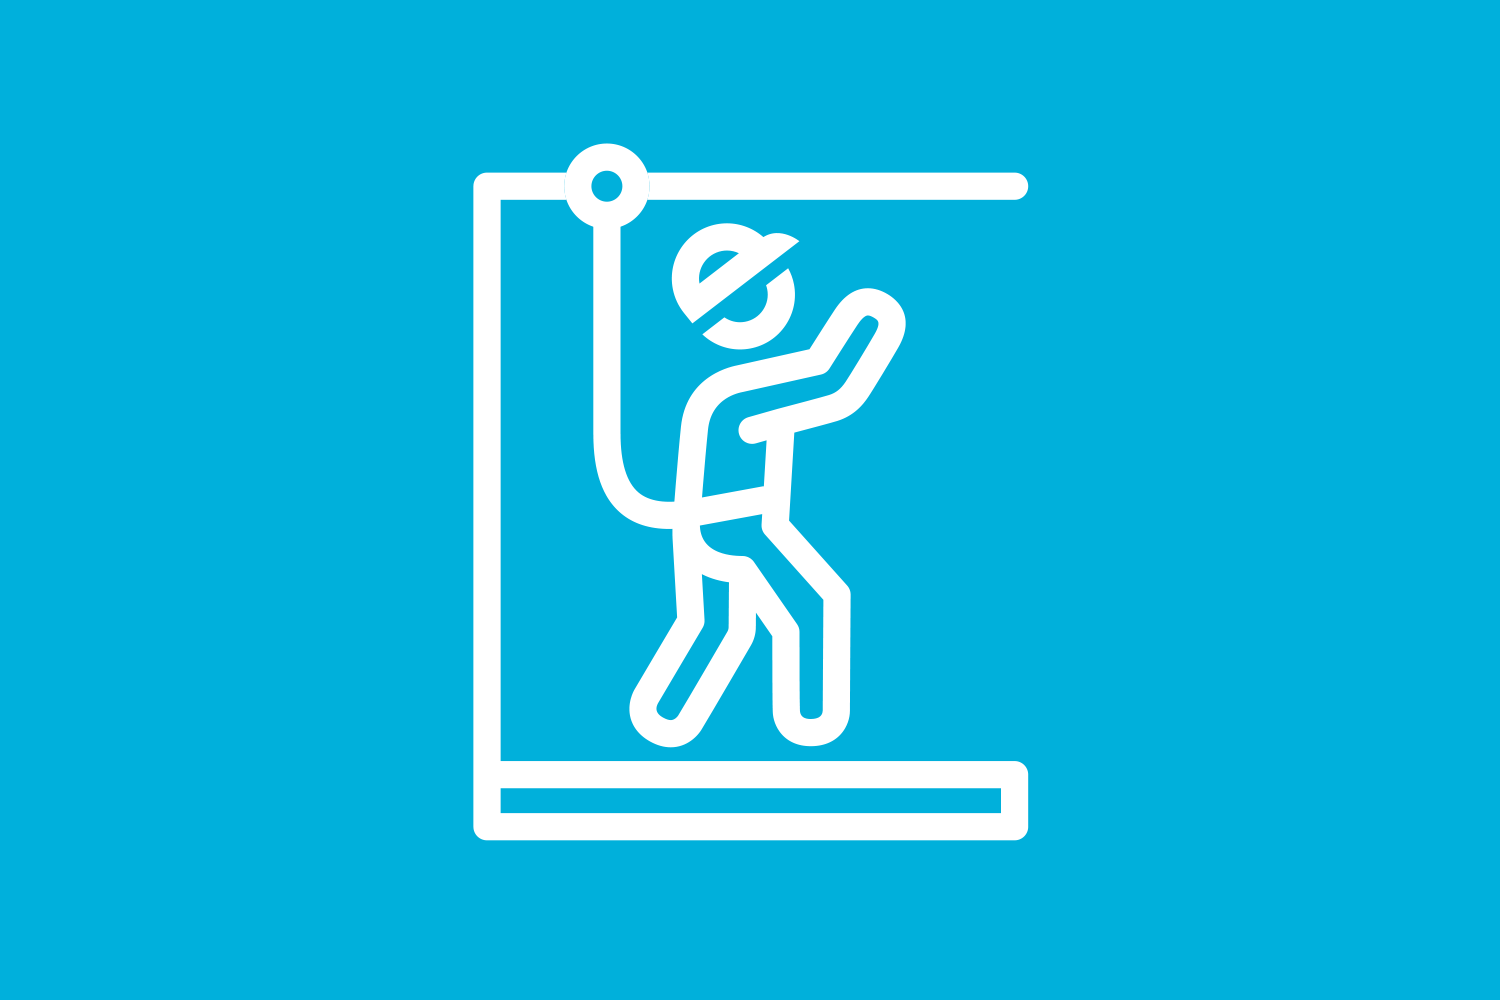 Icon illustrating our Life Saving rules for work at heights